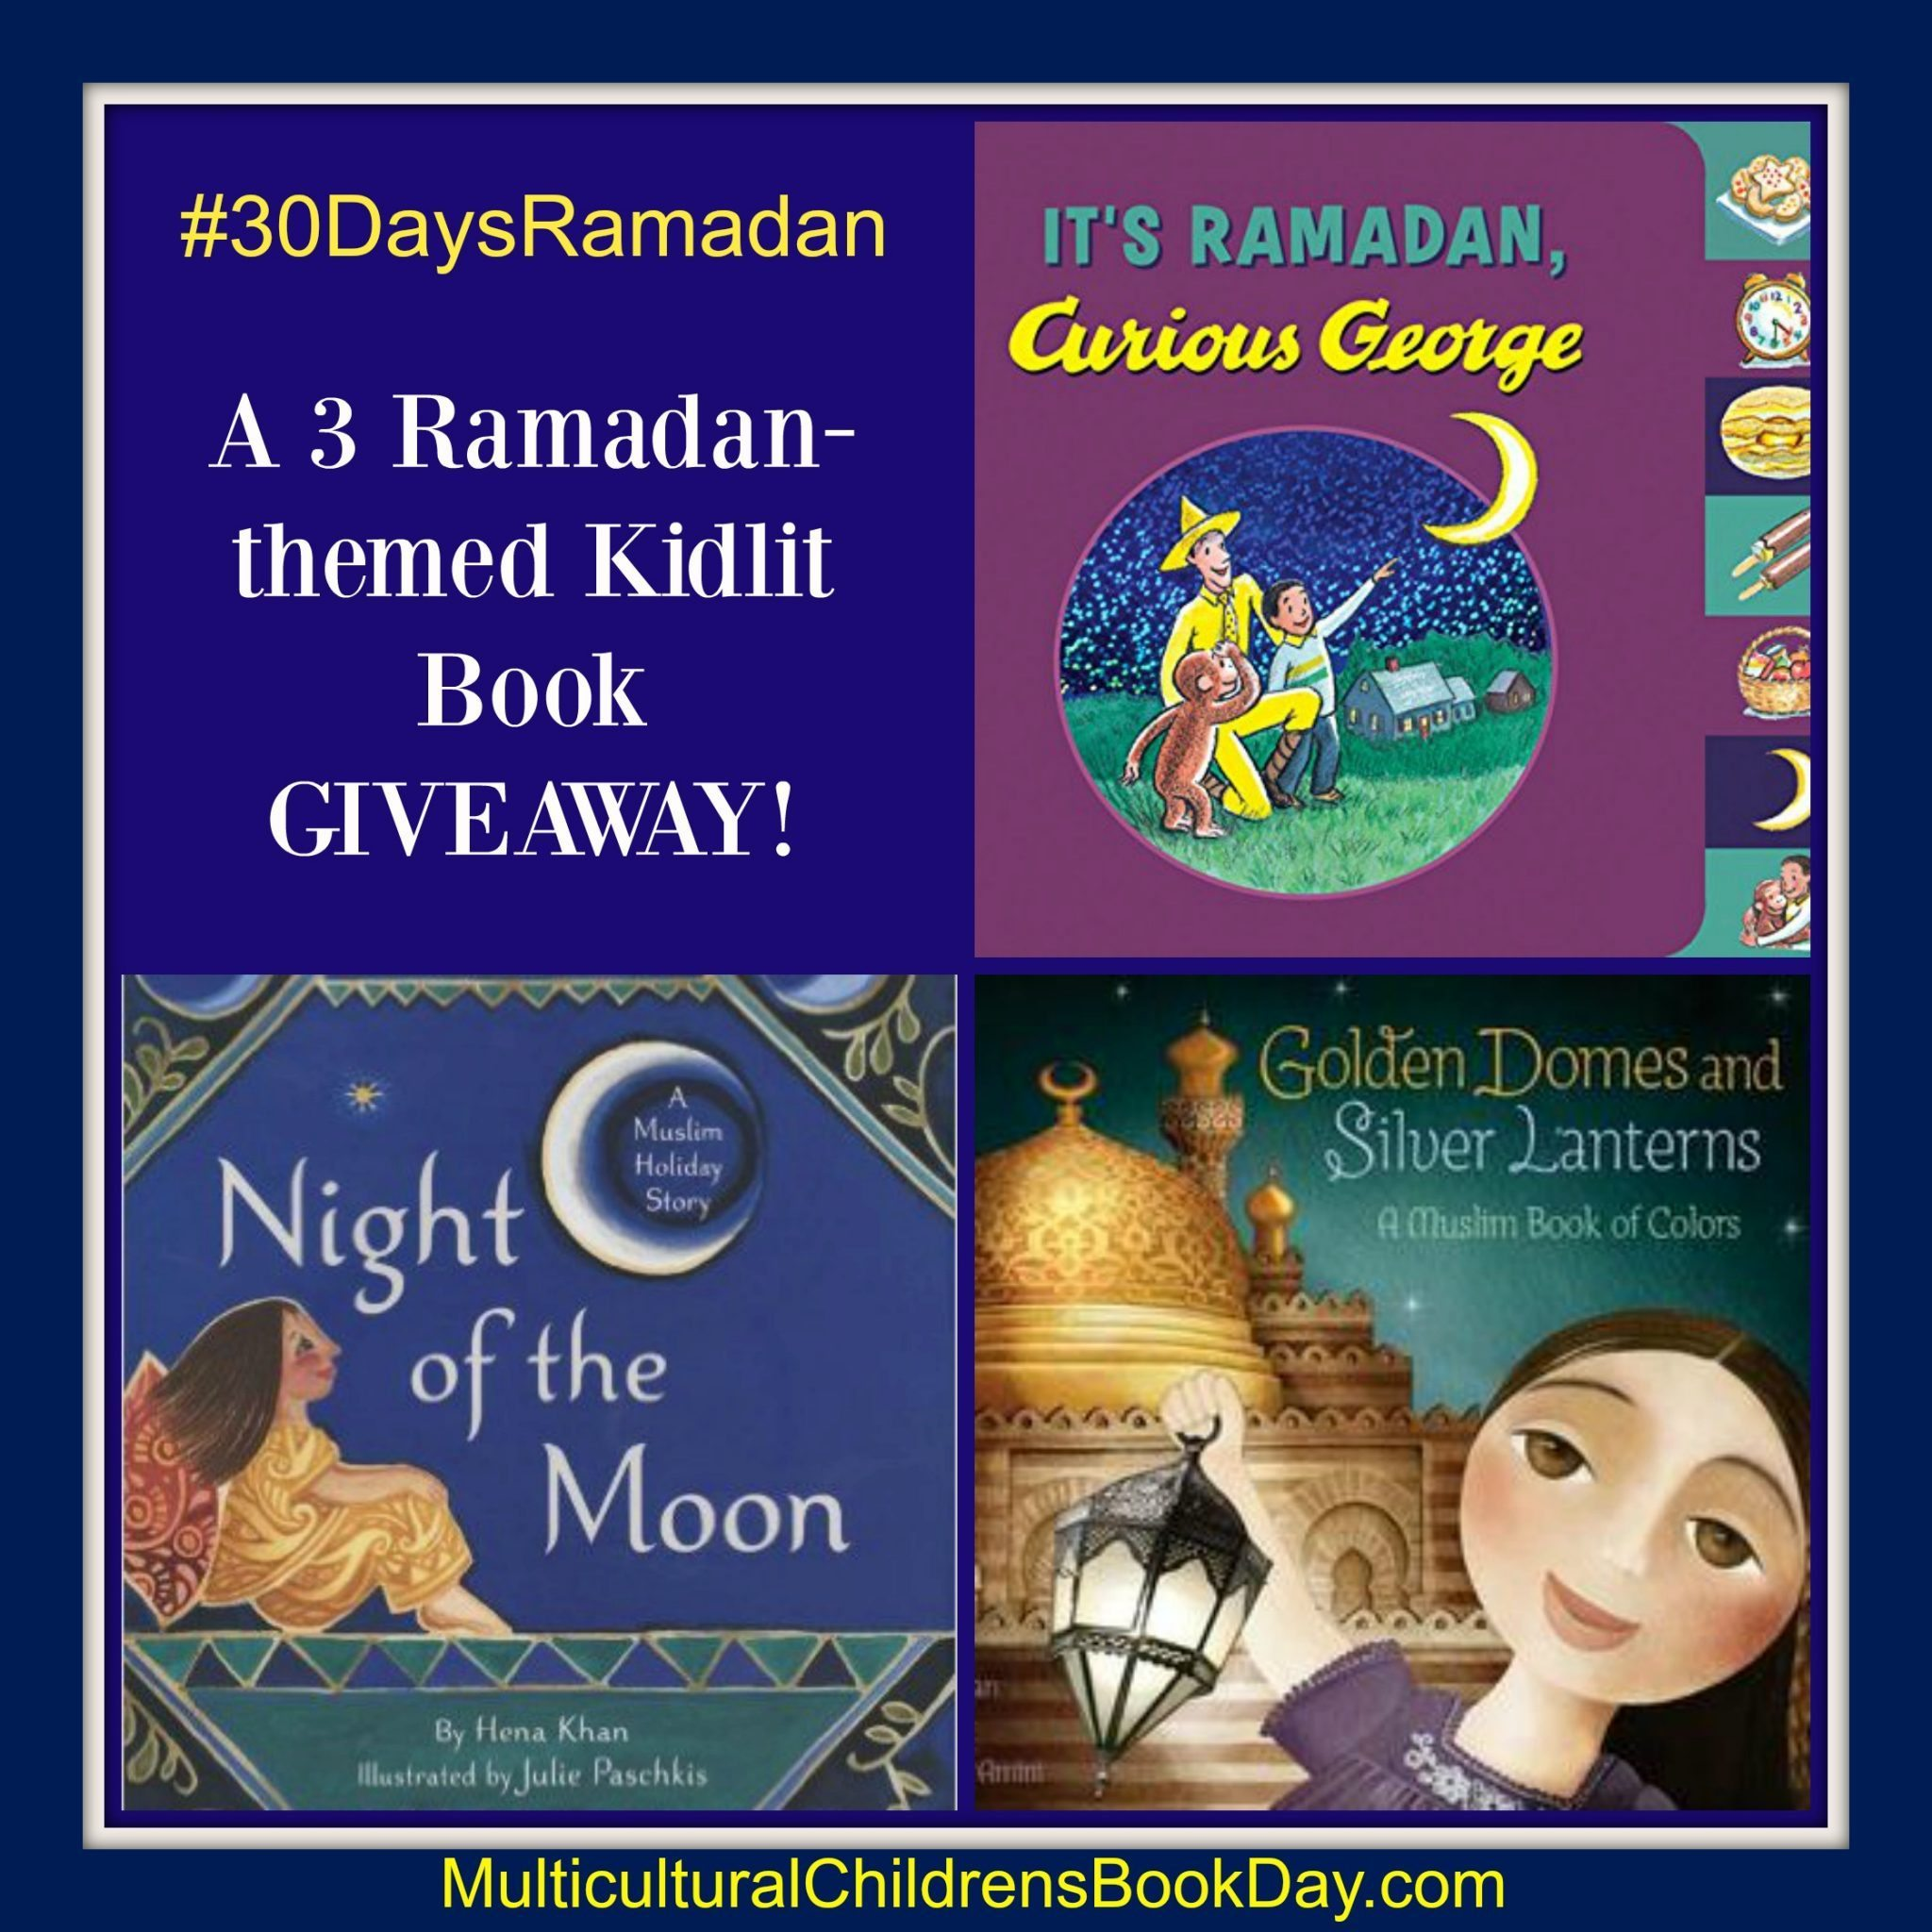 30 Days of Ramadan Kidlit Book Giveaway: 3 Books from Author Hena Kahn!